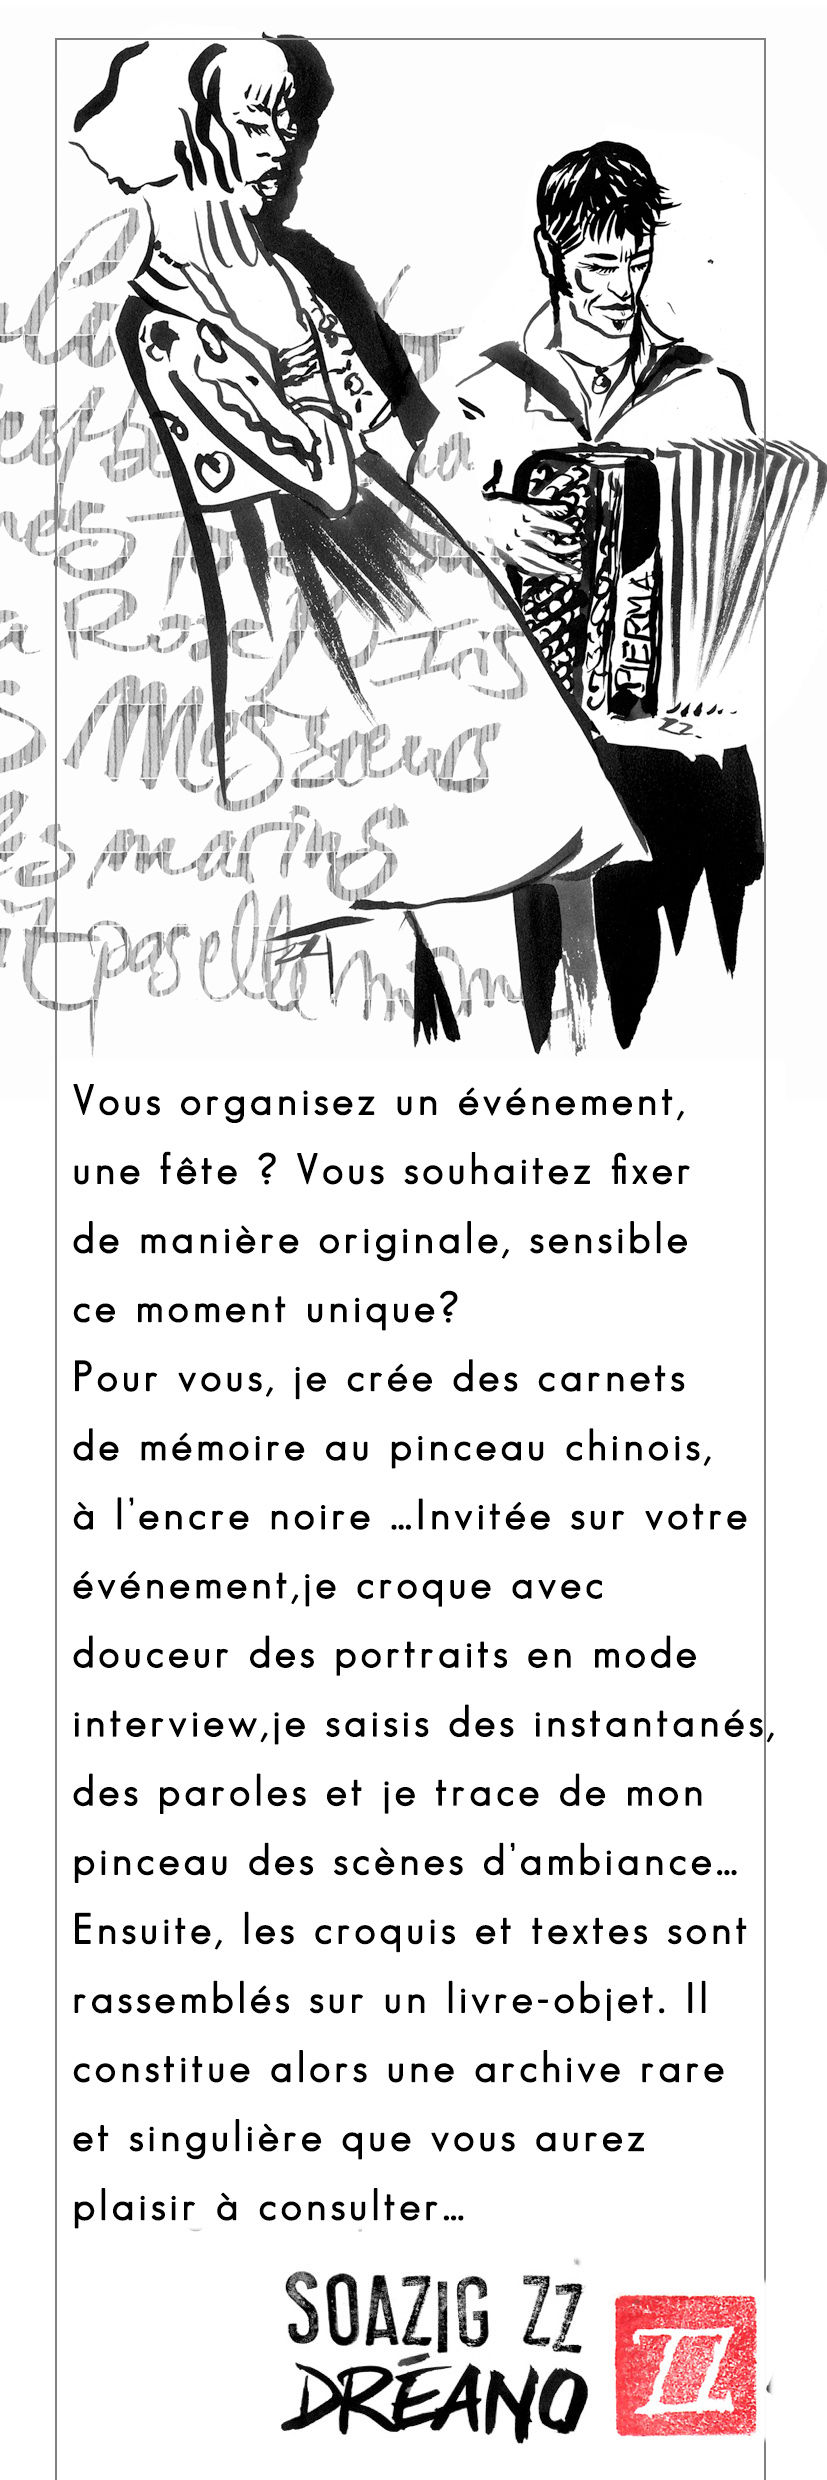 Fly reportage dessiné - croquis Soazig ZZ